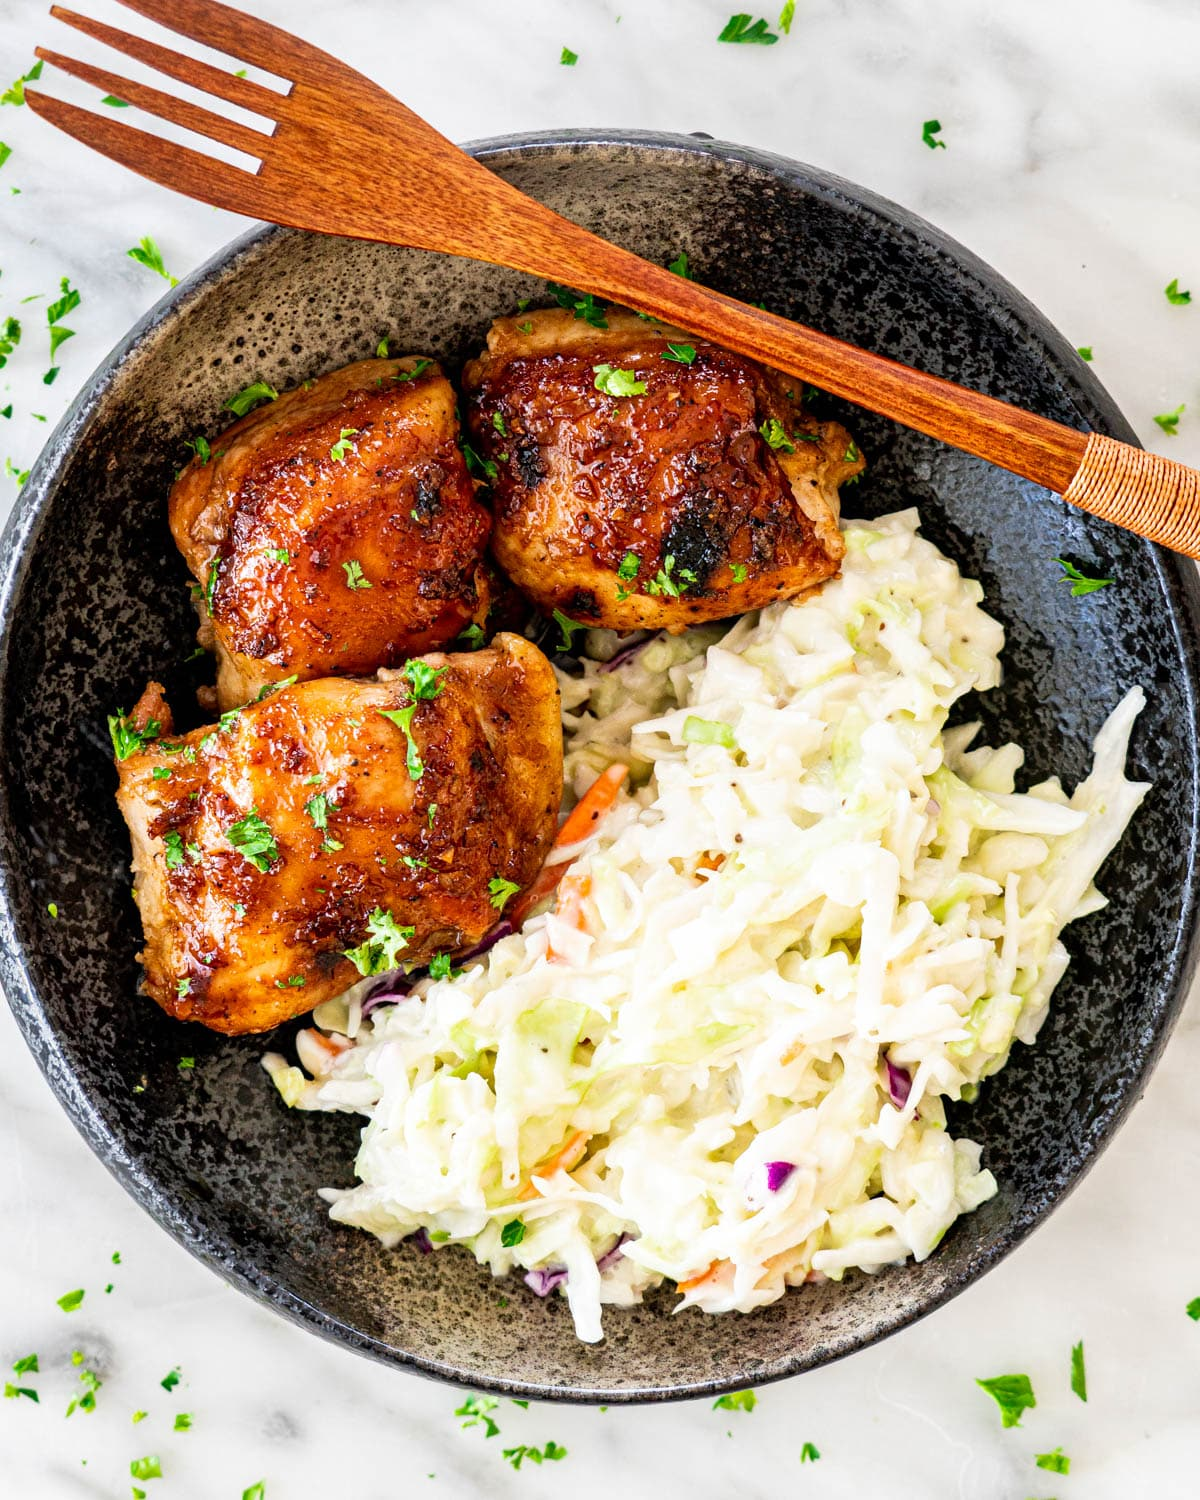 overhead shot of baked chicken thighs and coleslaw in a black dish